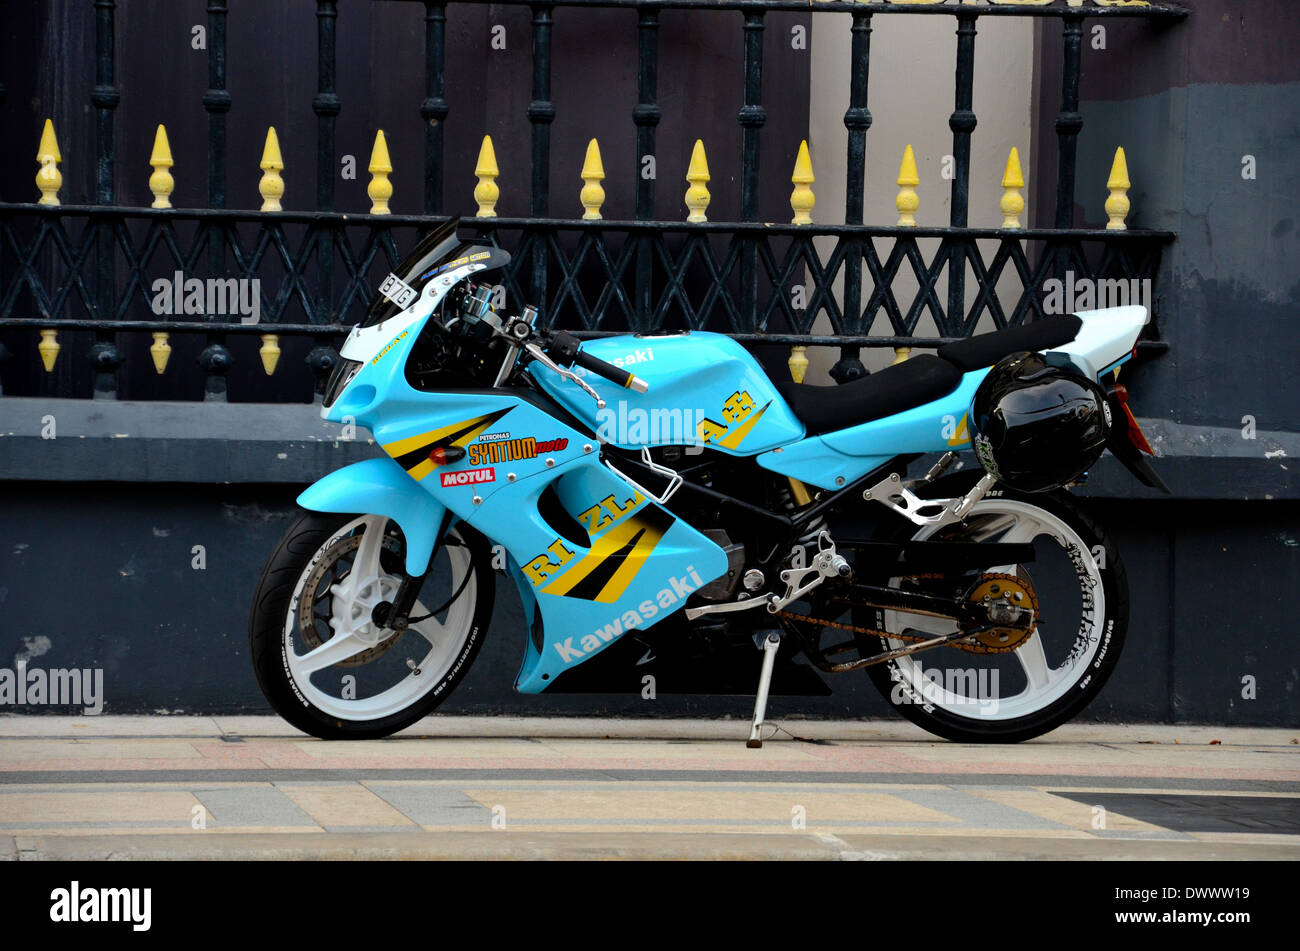 Blue yellow sporty Kawasaki motorcycle parked on pavement with Rizla and Petronas ads Stock Photo